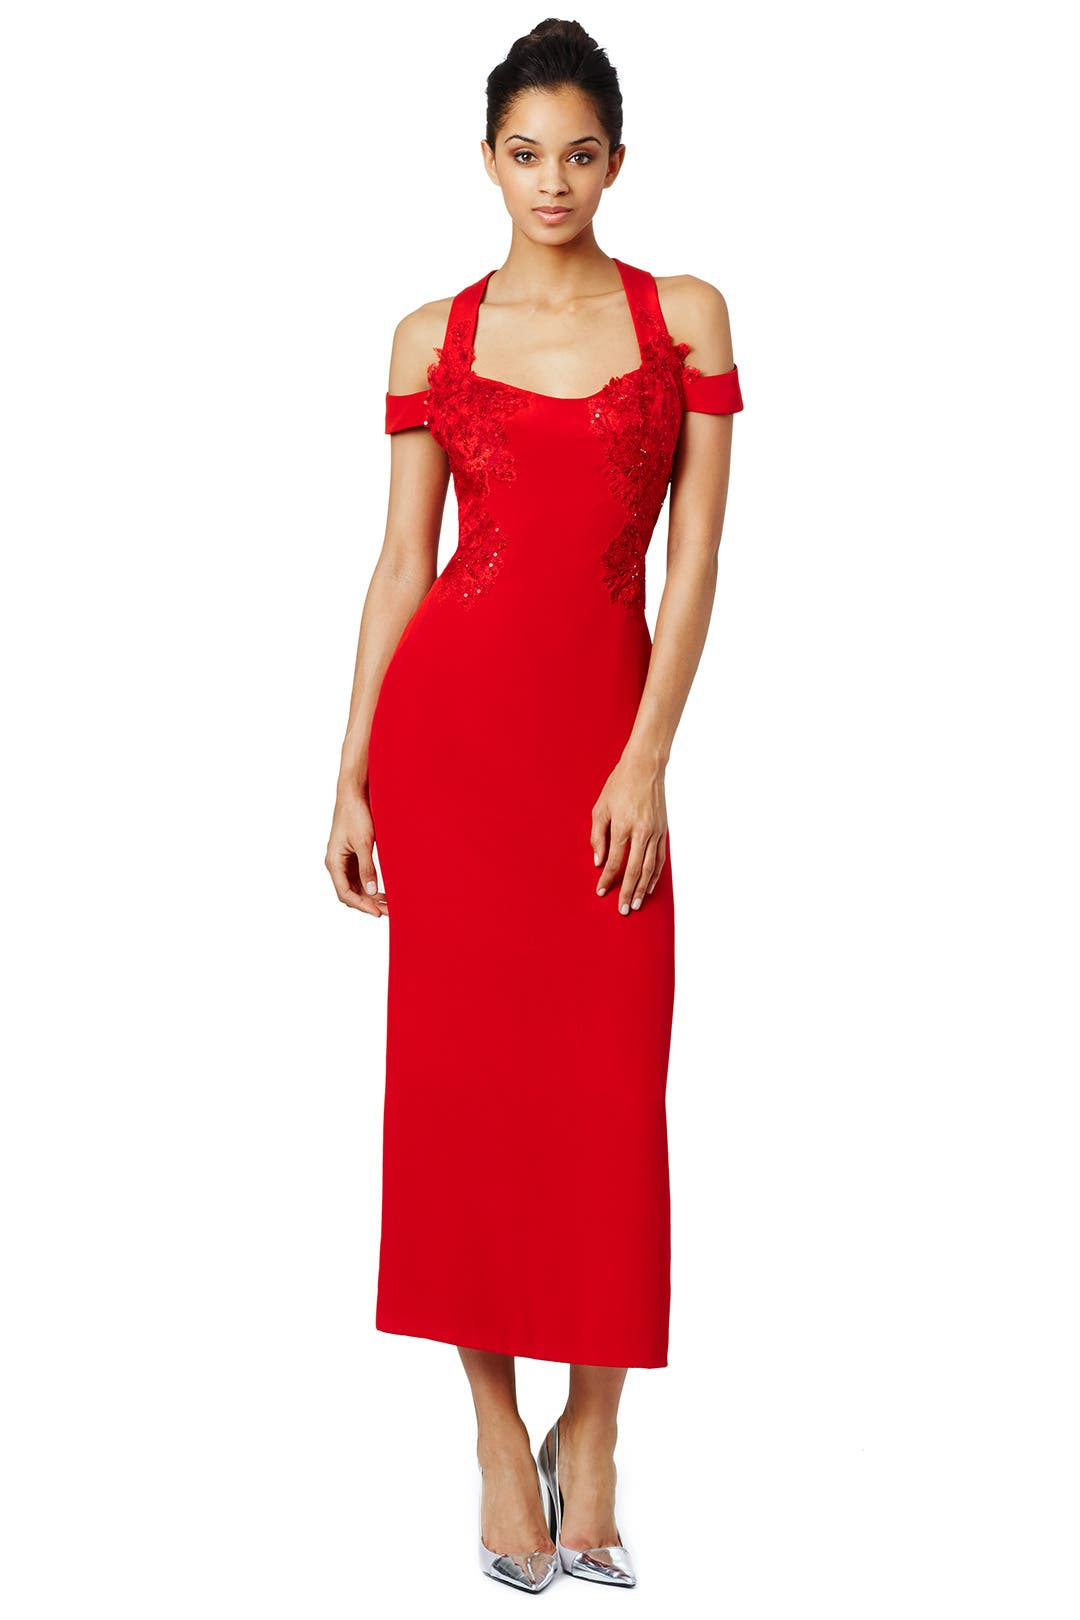 Front Lines Dress by Marchesa Notte for $219 | Rent the Runway